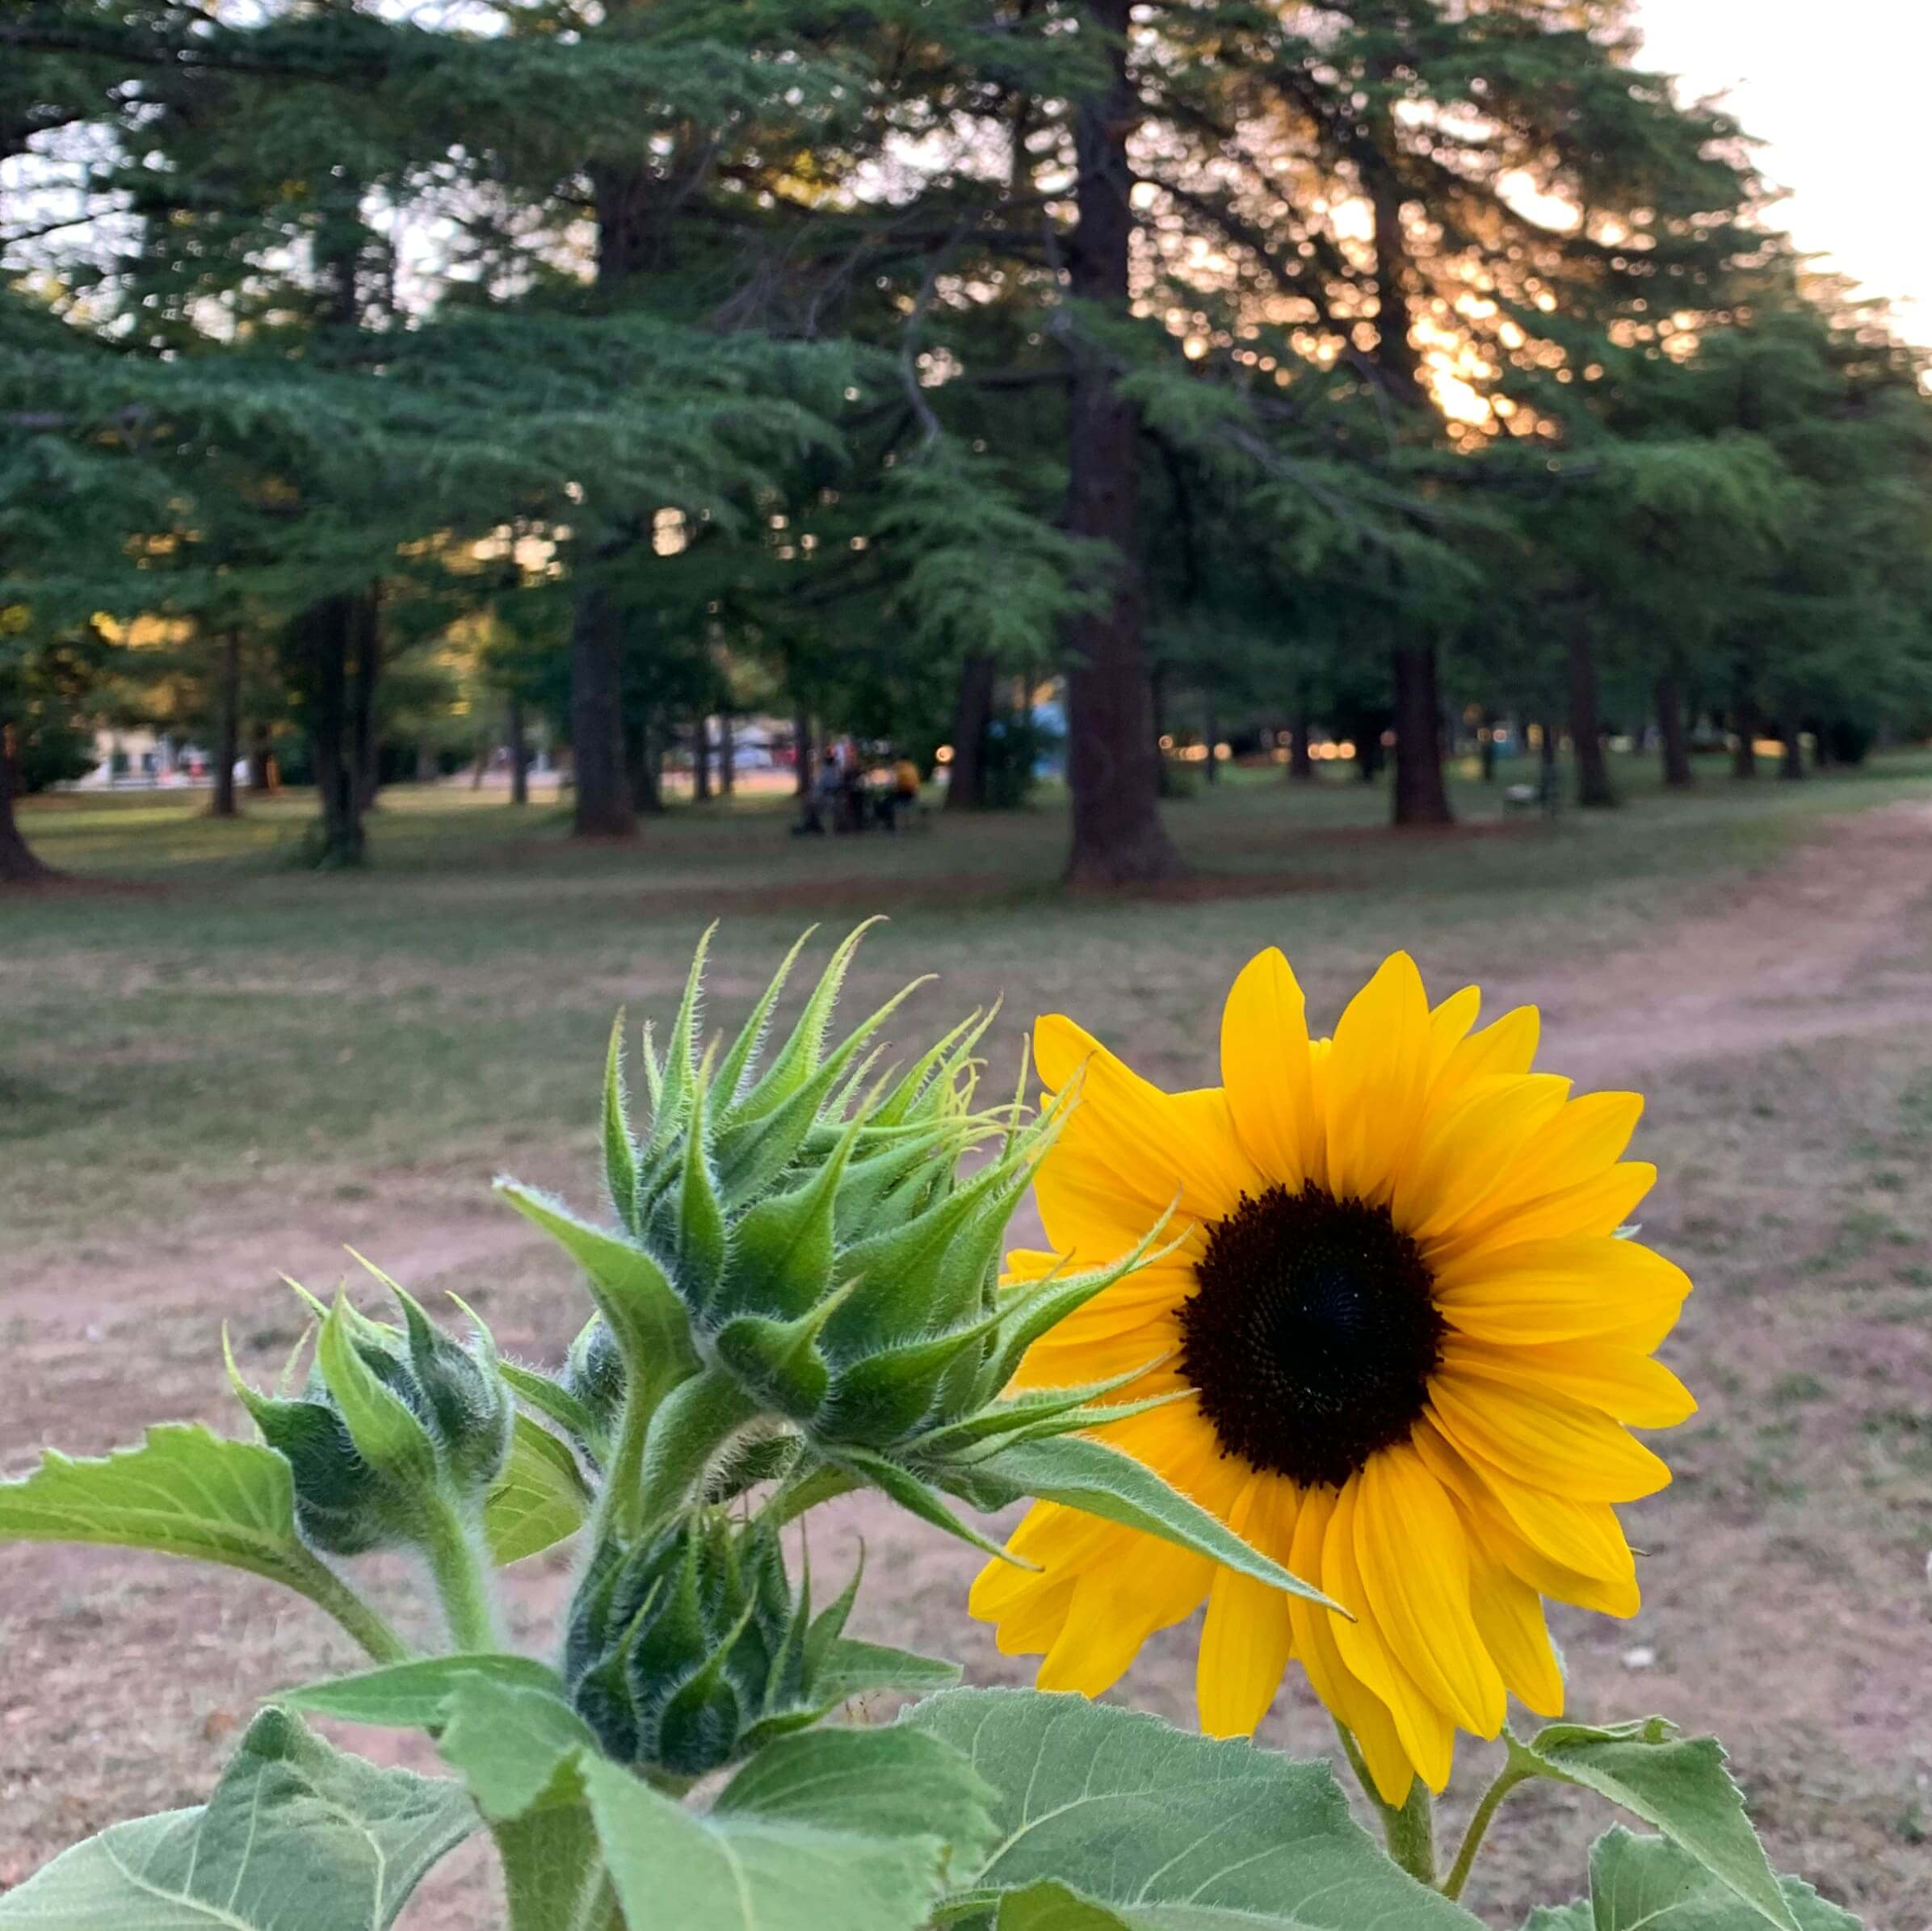 photo of a sunflower along with a bud, with the sunset in the background Canberra